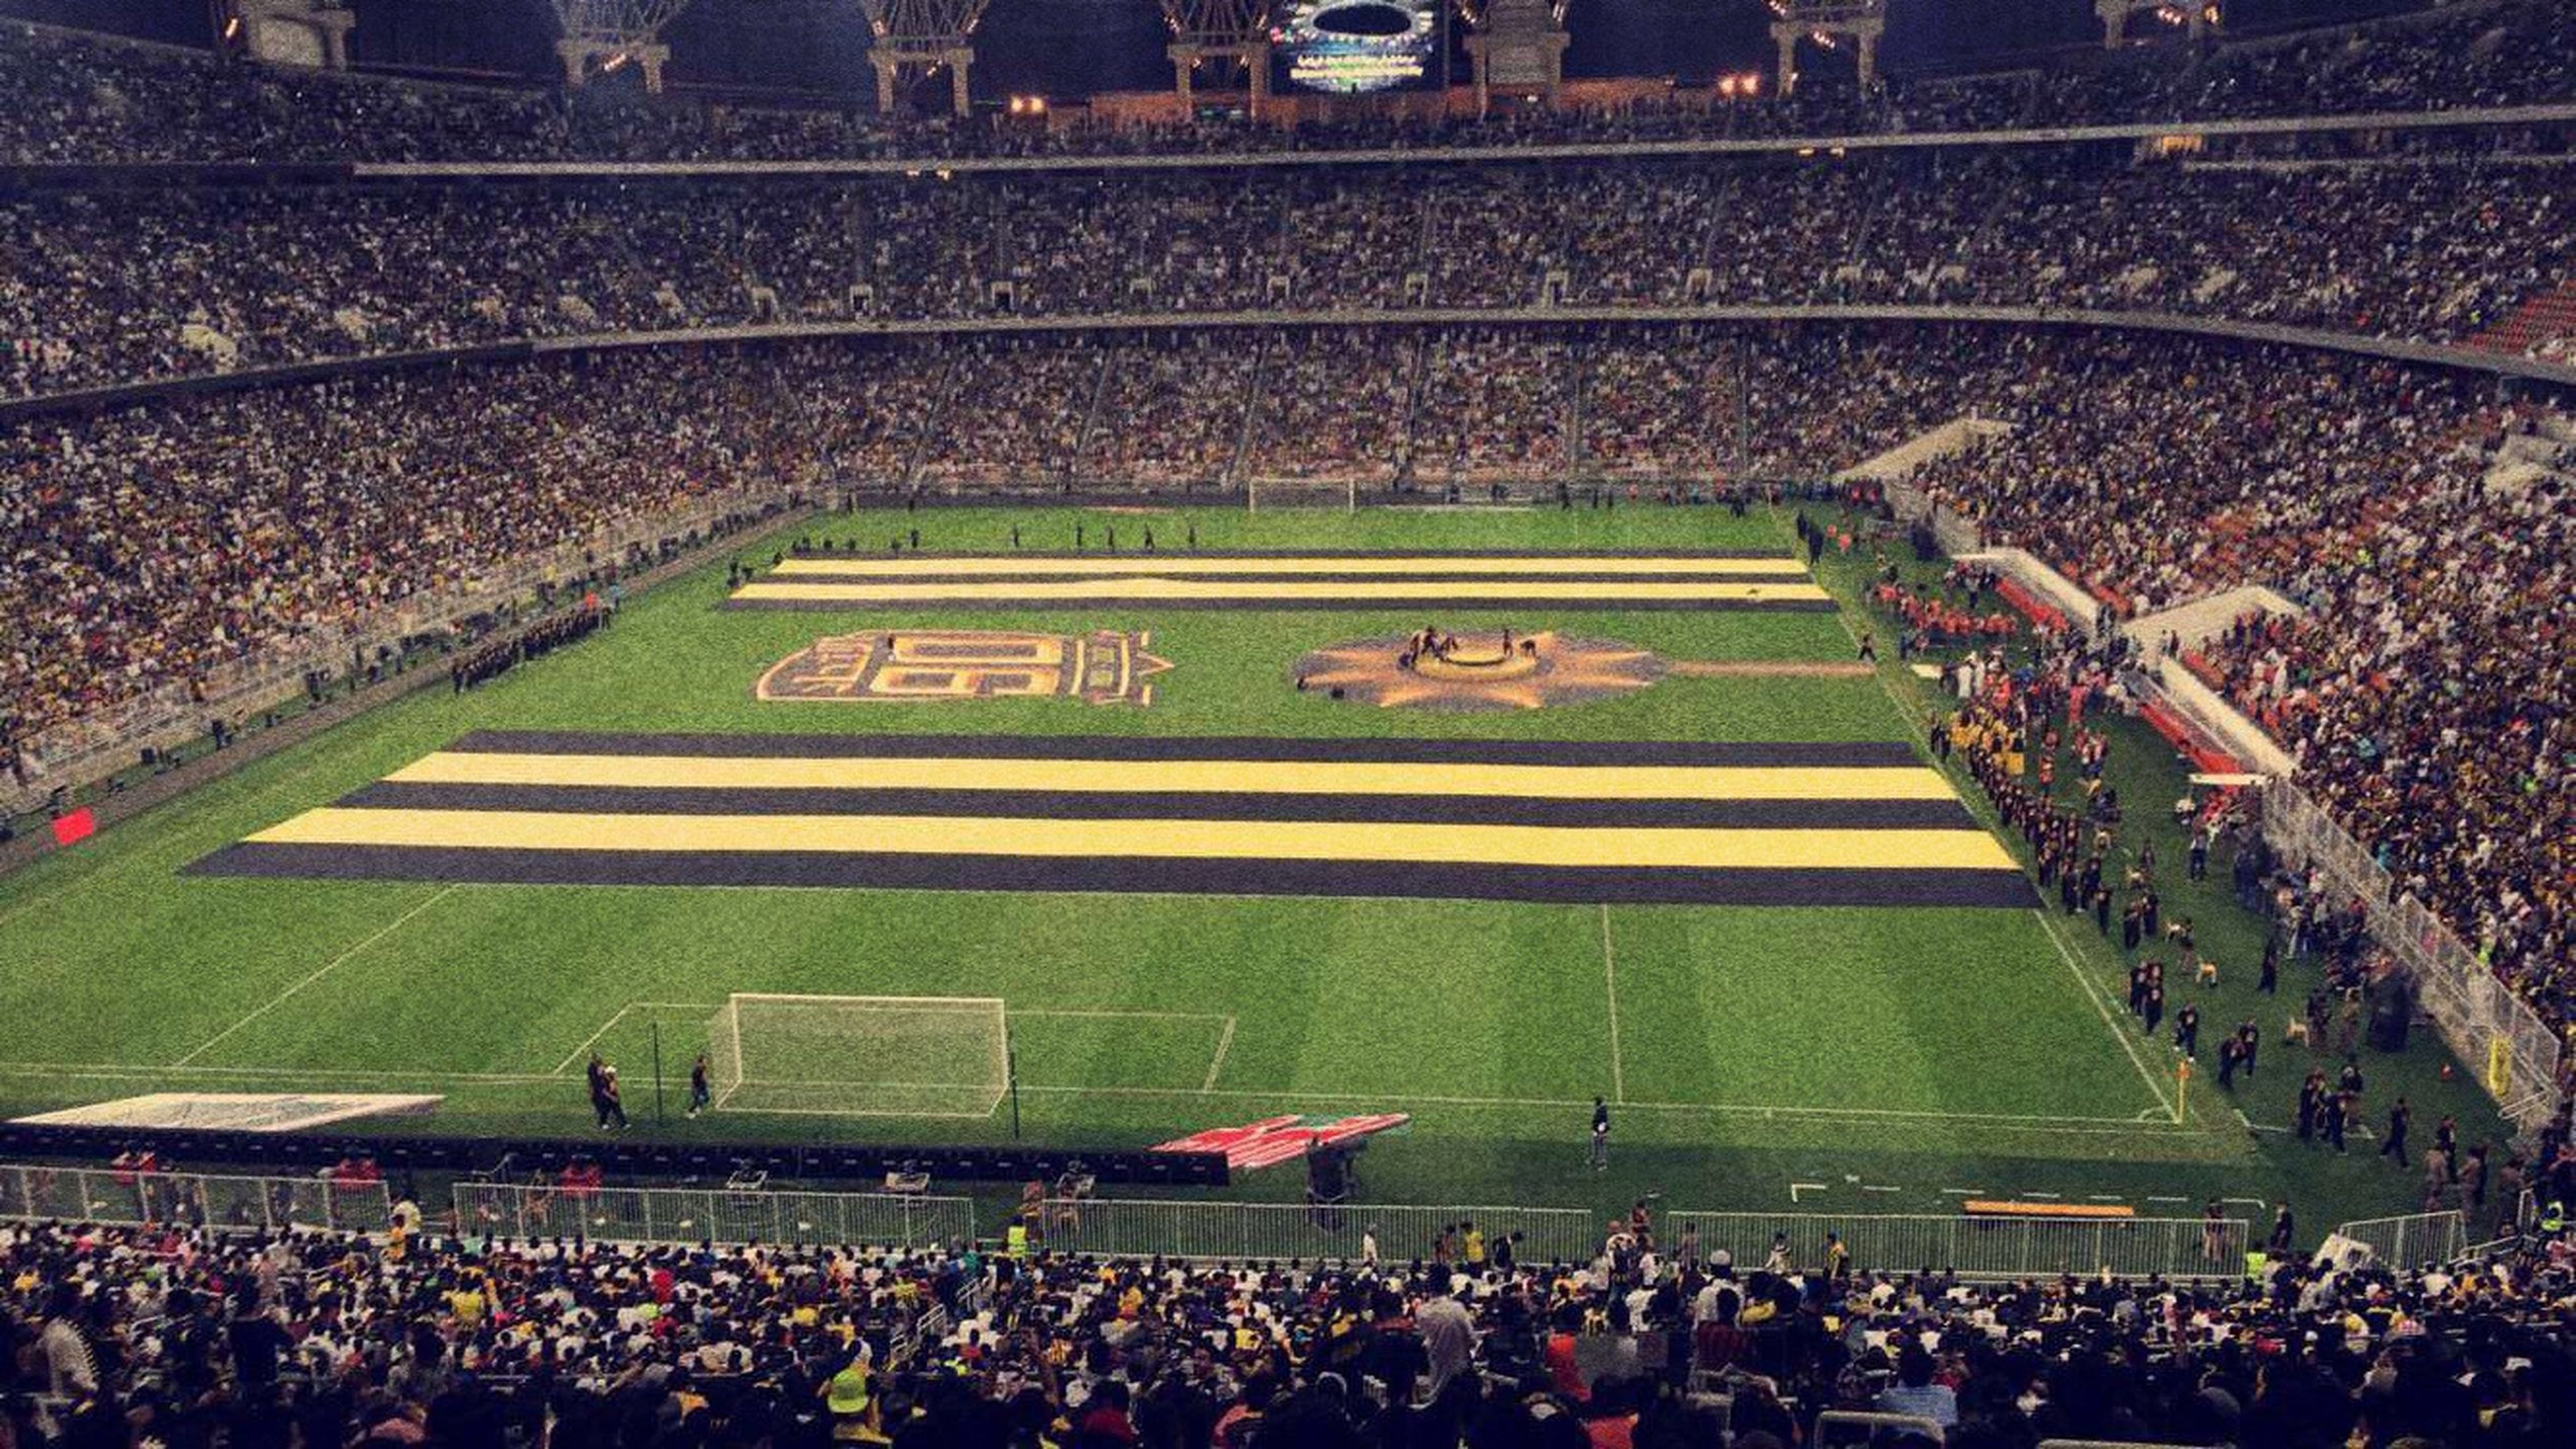 sport, stadium, large group of people, soccer, spectator, fan - enthusiast, sports team, night, crowd, people, bleachers, match - sport, audience, outdoors, soccer player, american football - sport, cheering, adult